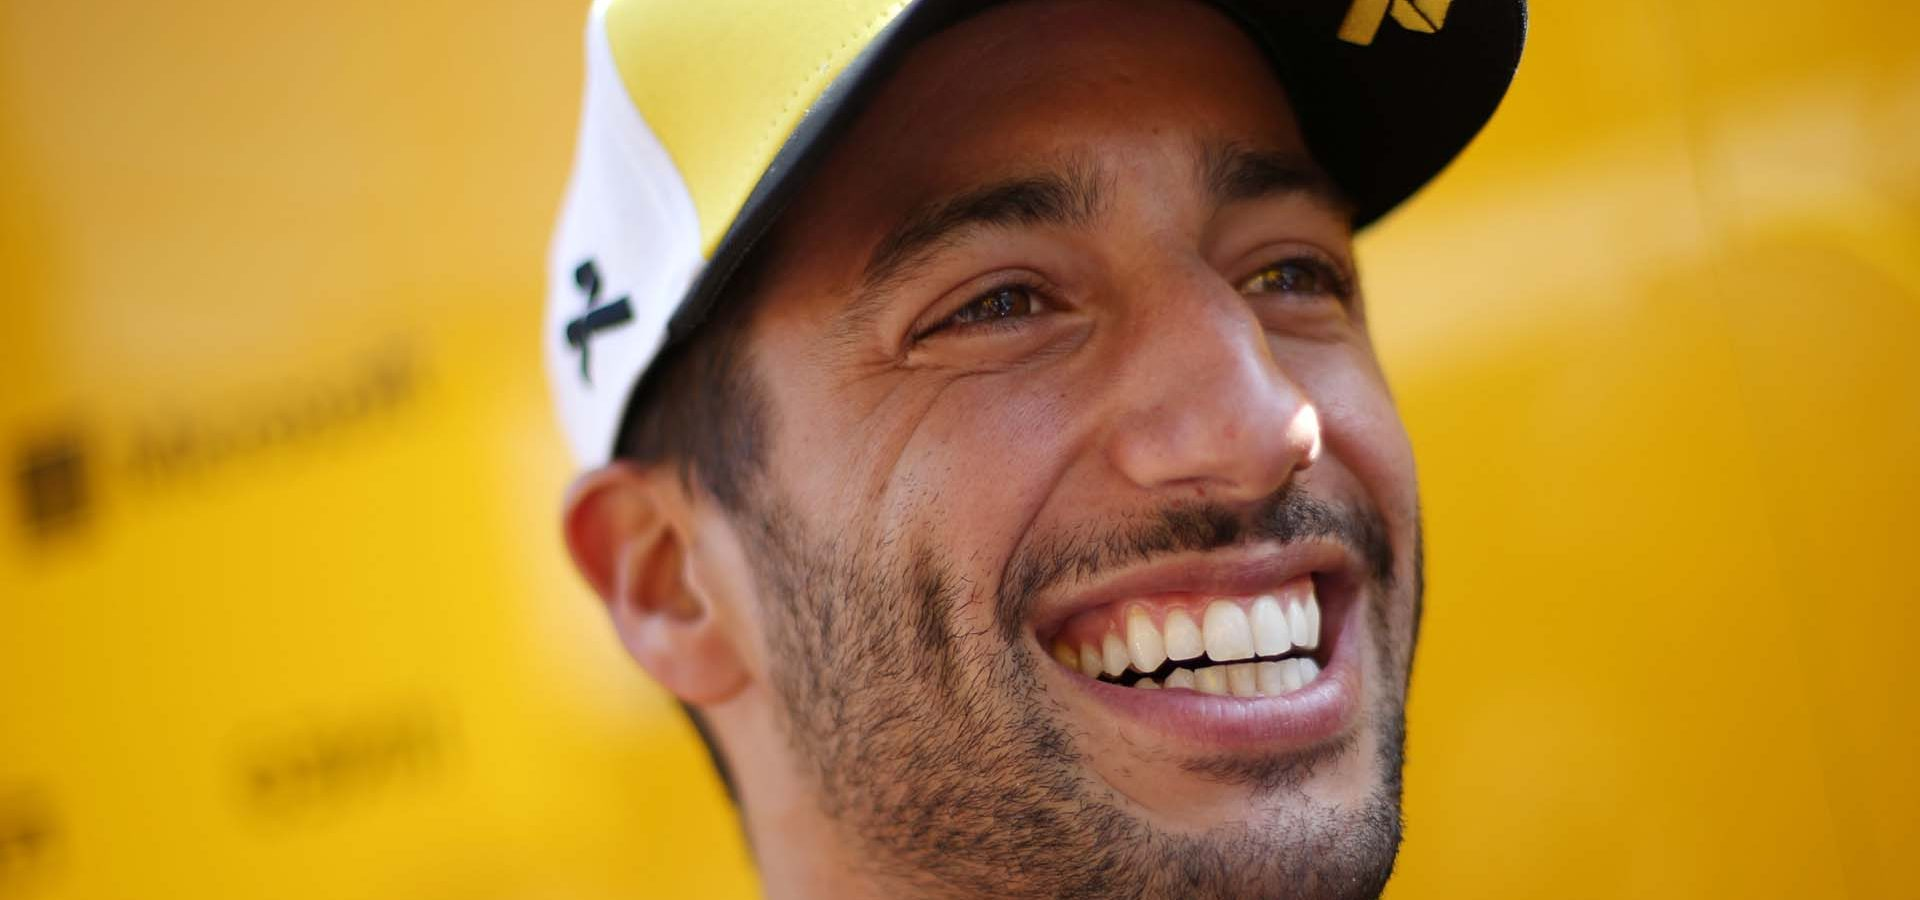 Daniel Ricciardo (AUS) Renault F1 Team. French Grand Prix, Thursday 20th June 2019. Paul Ricard, France.